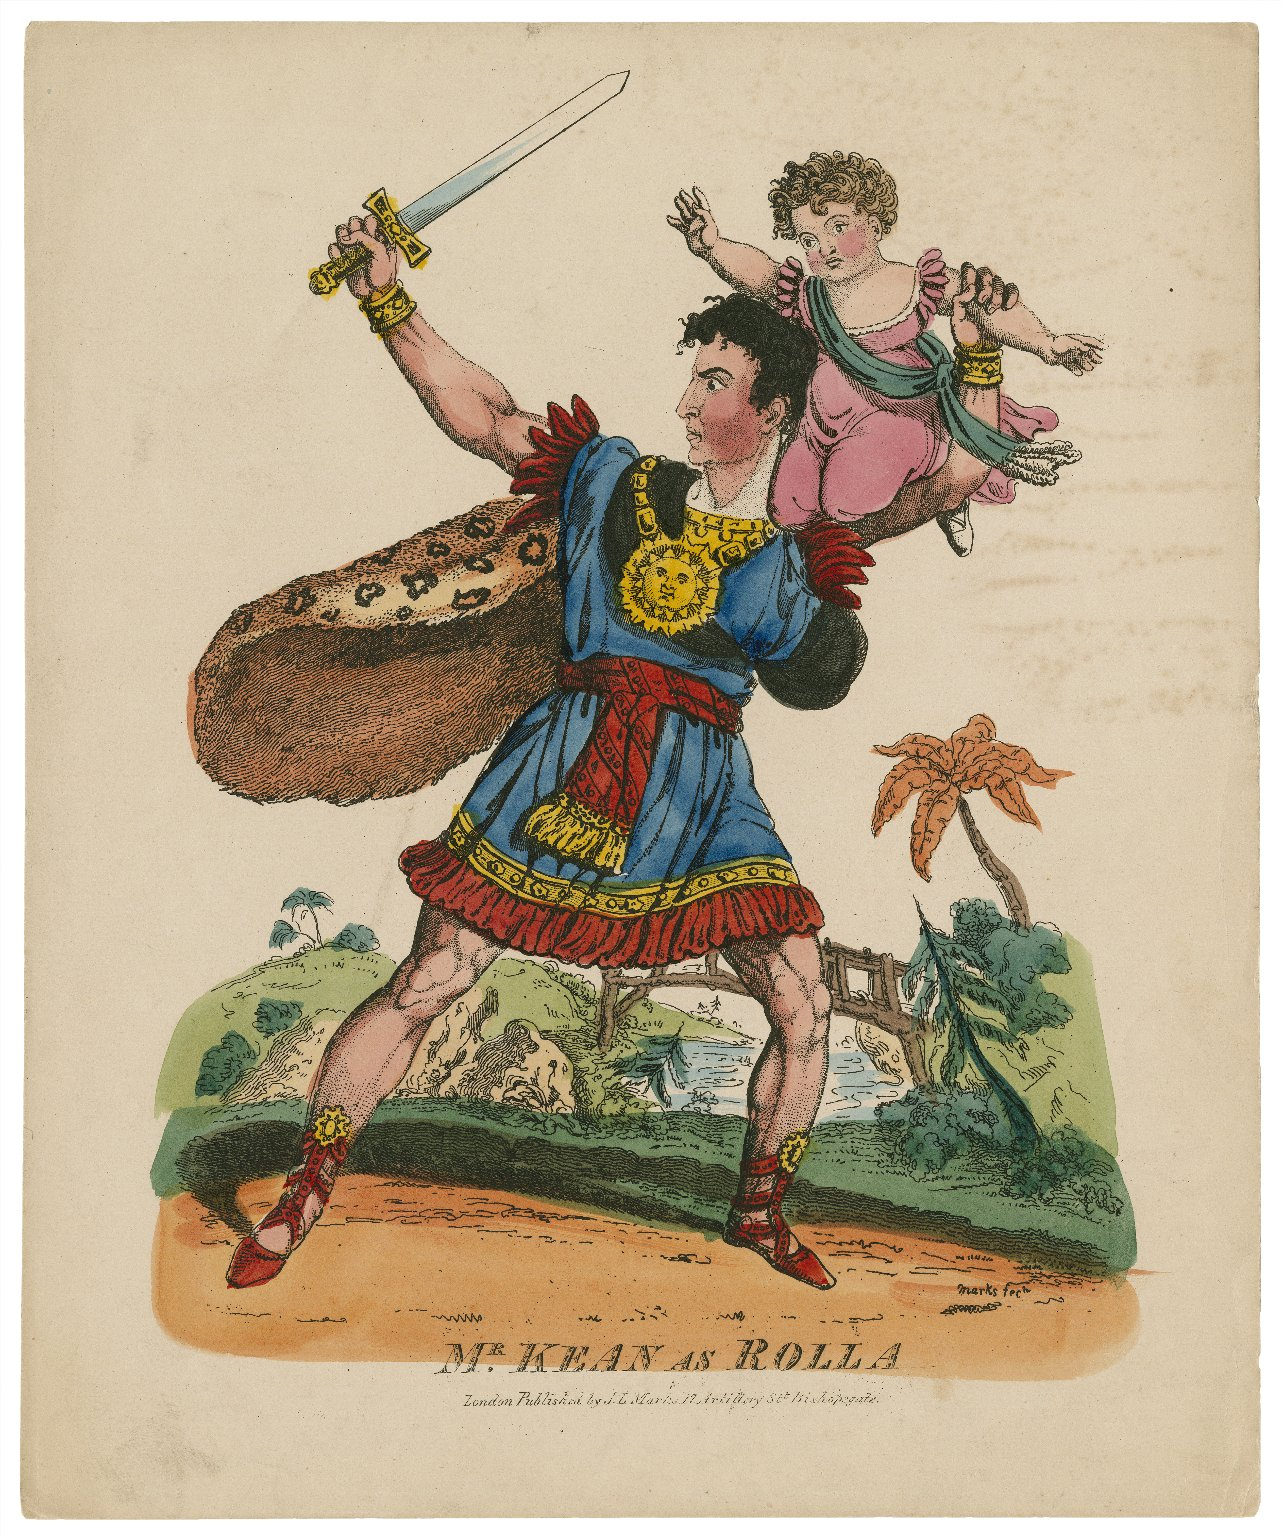 <b>Rolla</b>     	</br>Actor Edmund Kean as Rolla in Pizzaro, 19th century</br><br/><b>Source: </b><i>John Lewis Marks, Mr. Kean as Rolla (Call number: ART File K24.4 no.28), 19th century, Folger Digital Image Collection, University of Cincinnati Libraries Digital Collections, University of Cincinnati, http://digproj.libraries.uc.edu:8180/luna/servlet/s/1qr297</i>